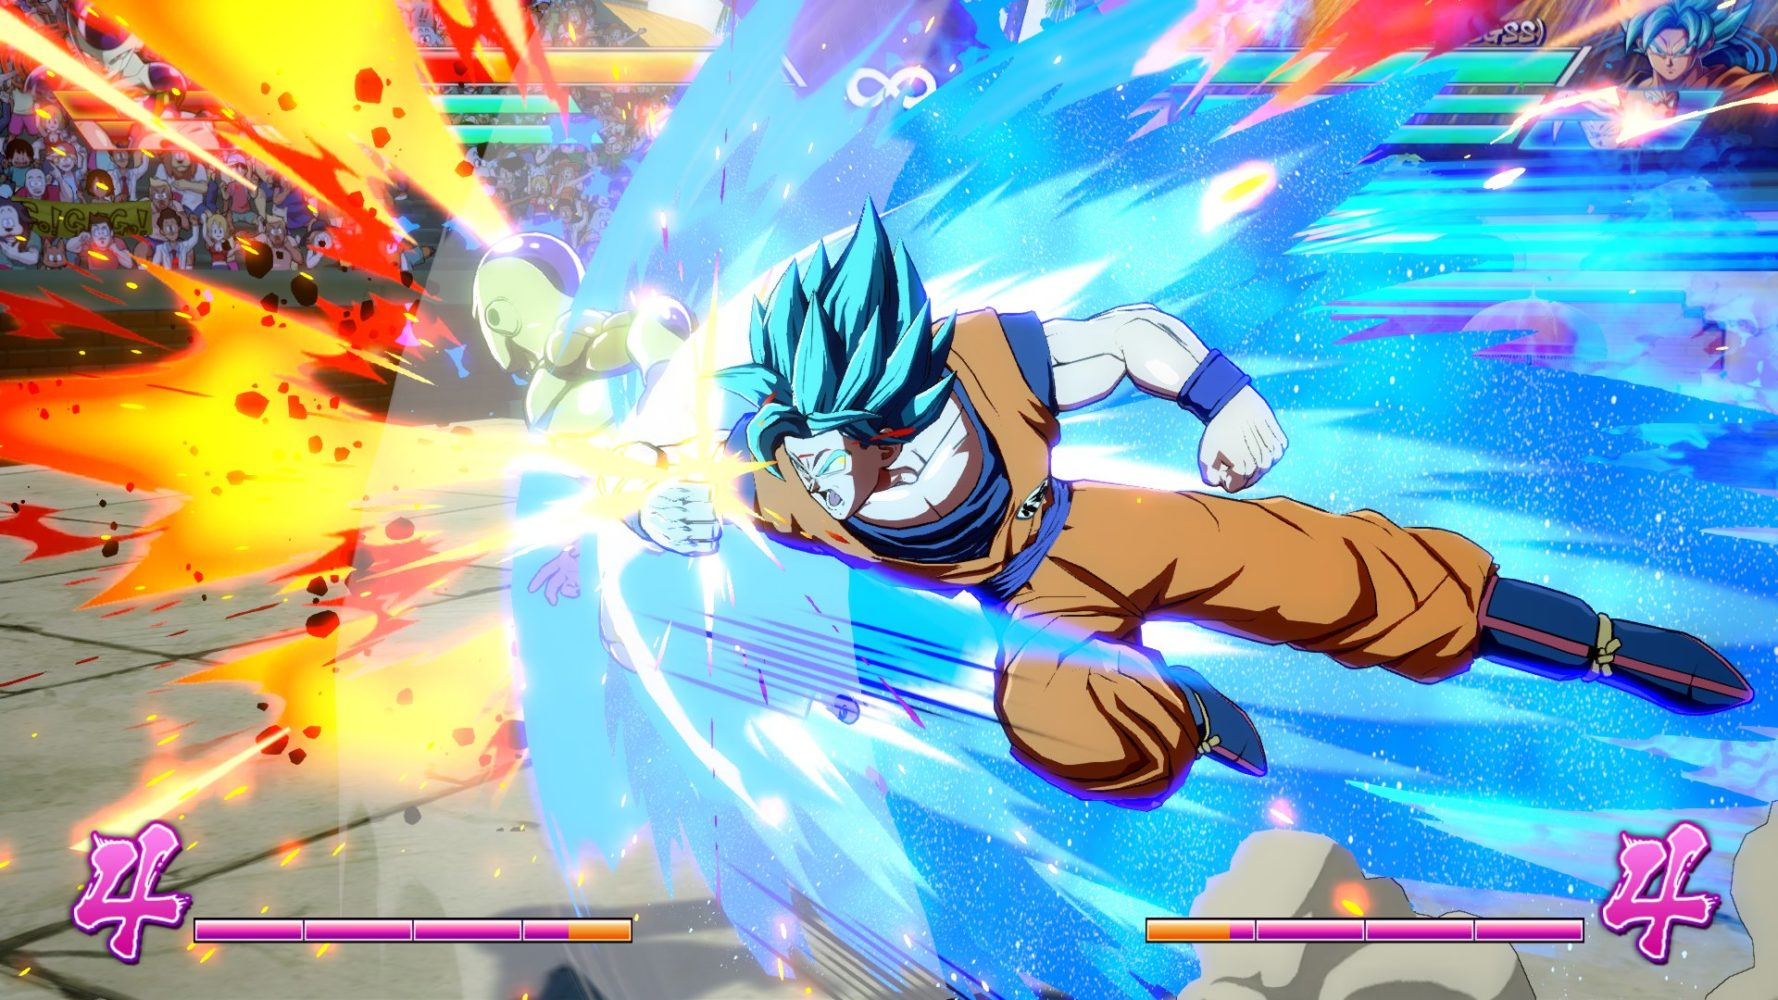 DBZ Blue goku fight